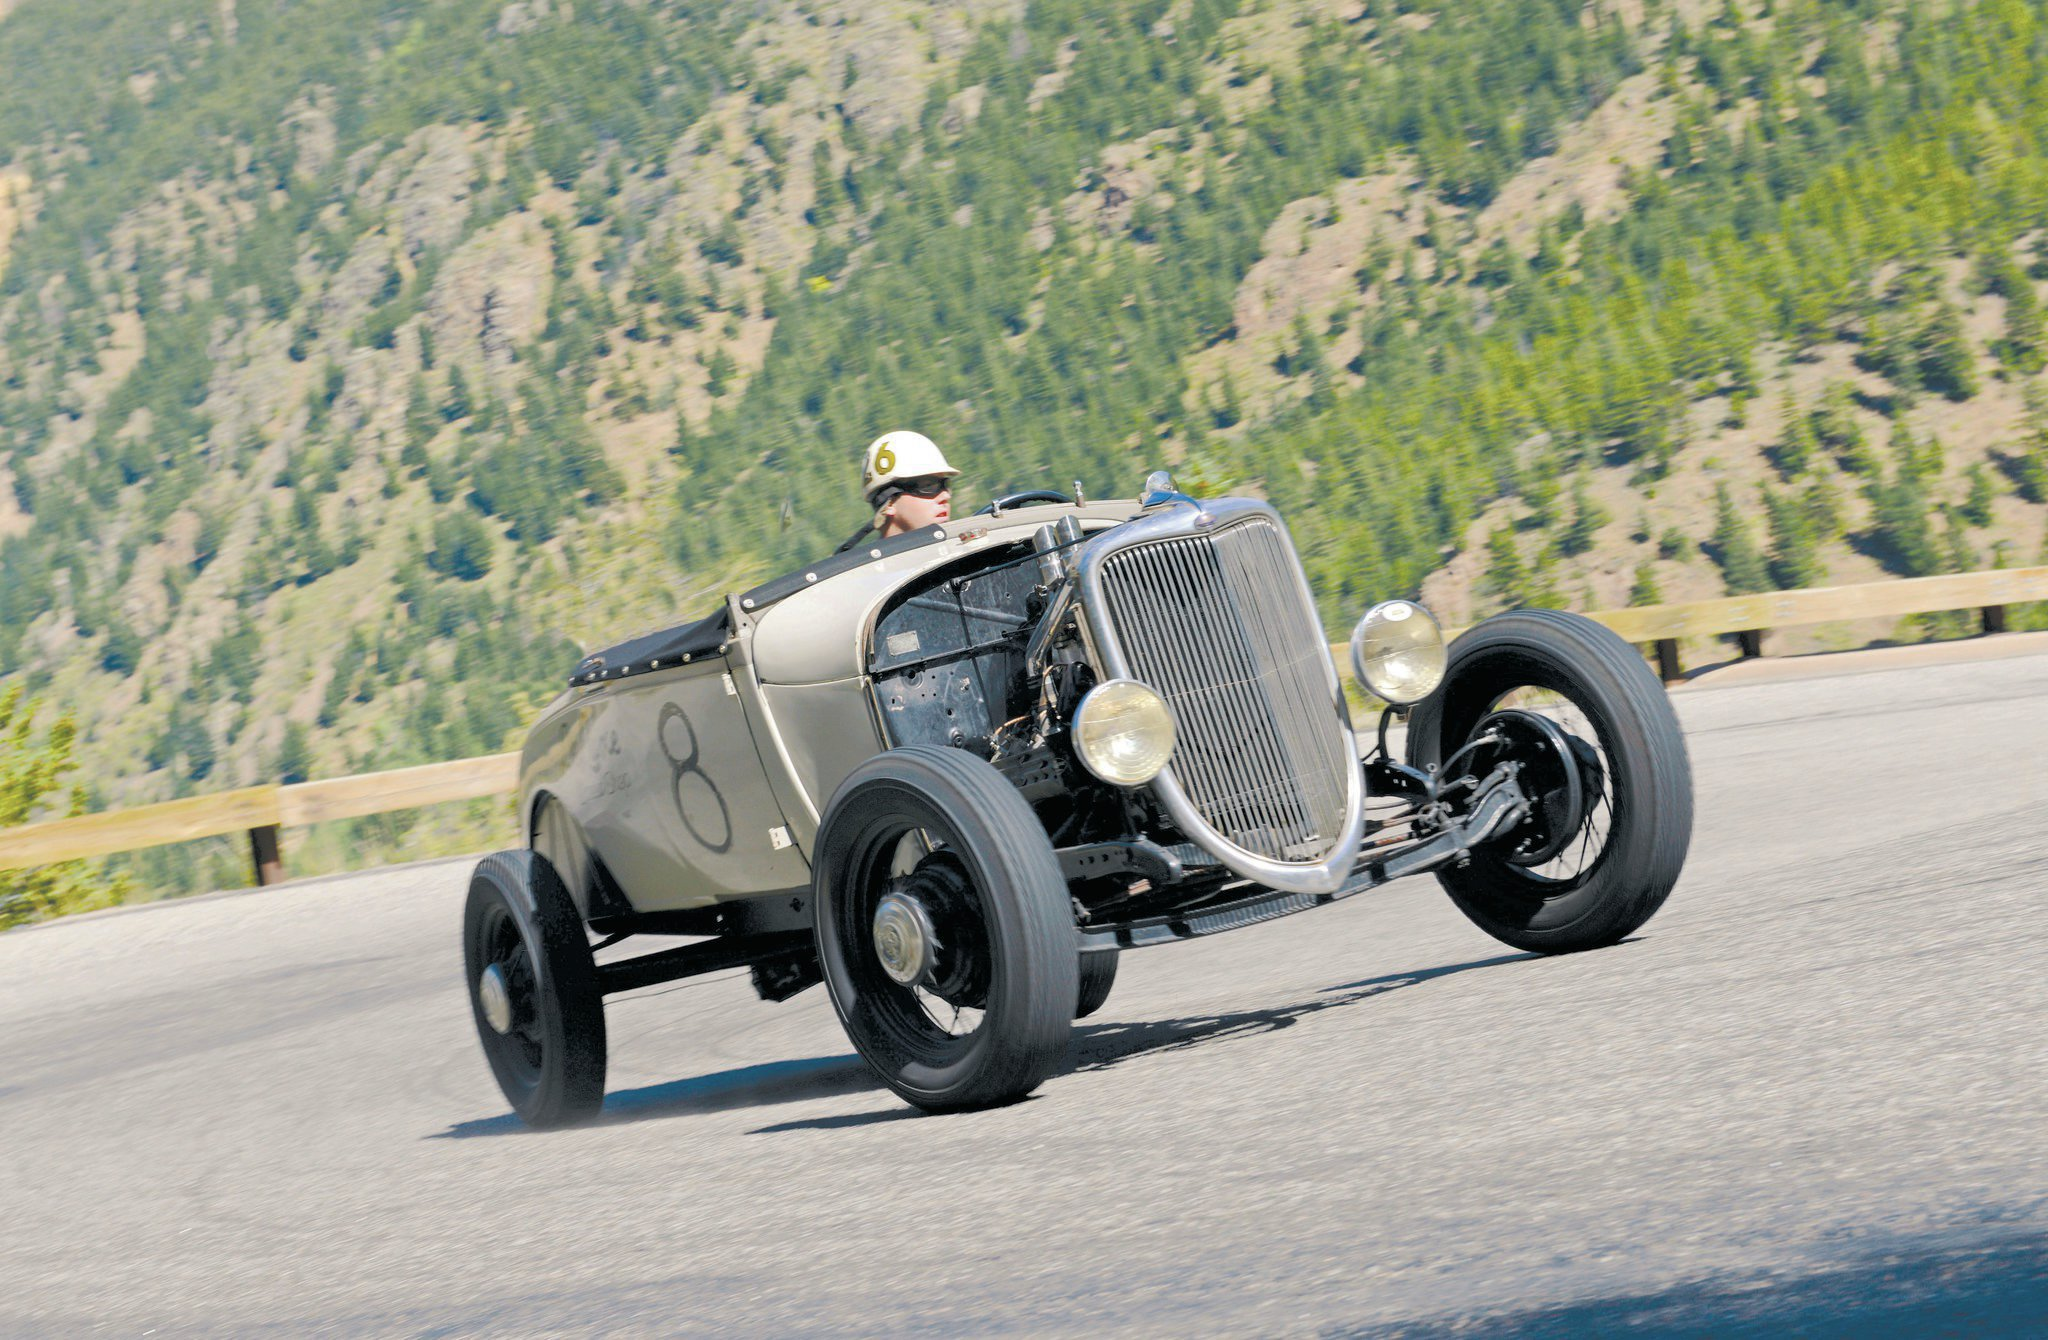 Bryan McCann (Scott's son) took on the HRHC with a vengeance, showing the crowd that the apple didn't fall far from the family tree. He blistered up the incline in his Deluxe Speed Shop–built '28 roadster, powered by a '49 239ci flathead topped with a Weiand intake and Fenton heads. All that power is sent to a vintage sprint car quick-change rear.